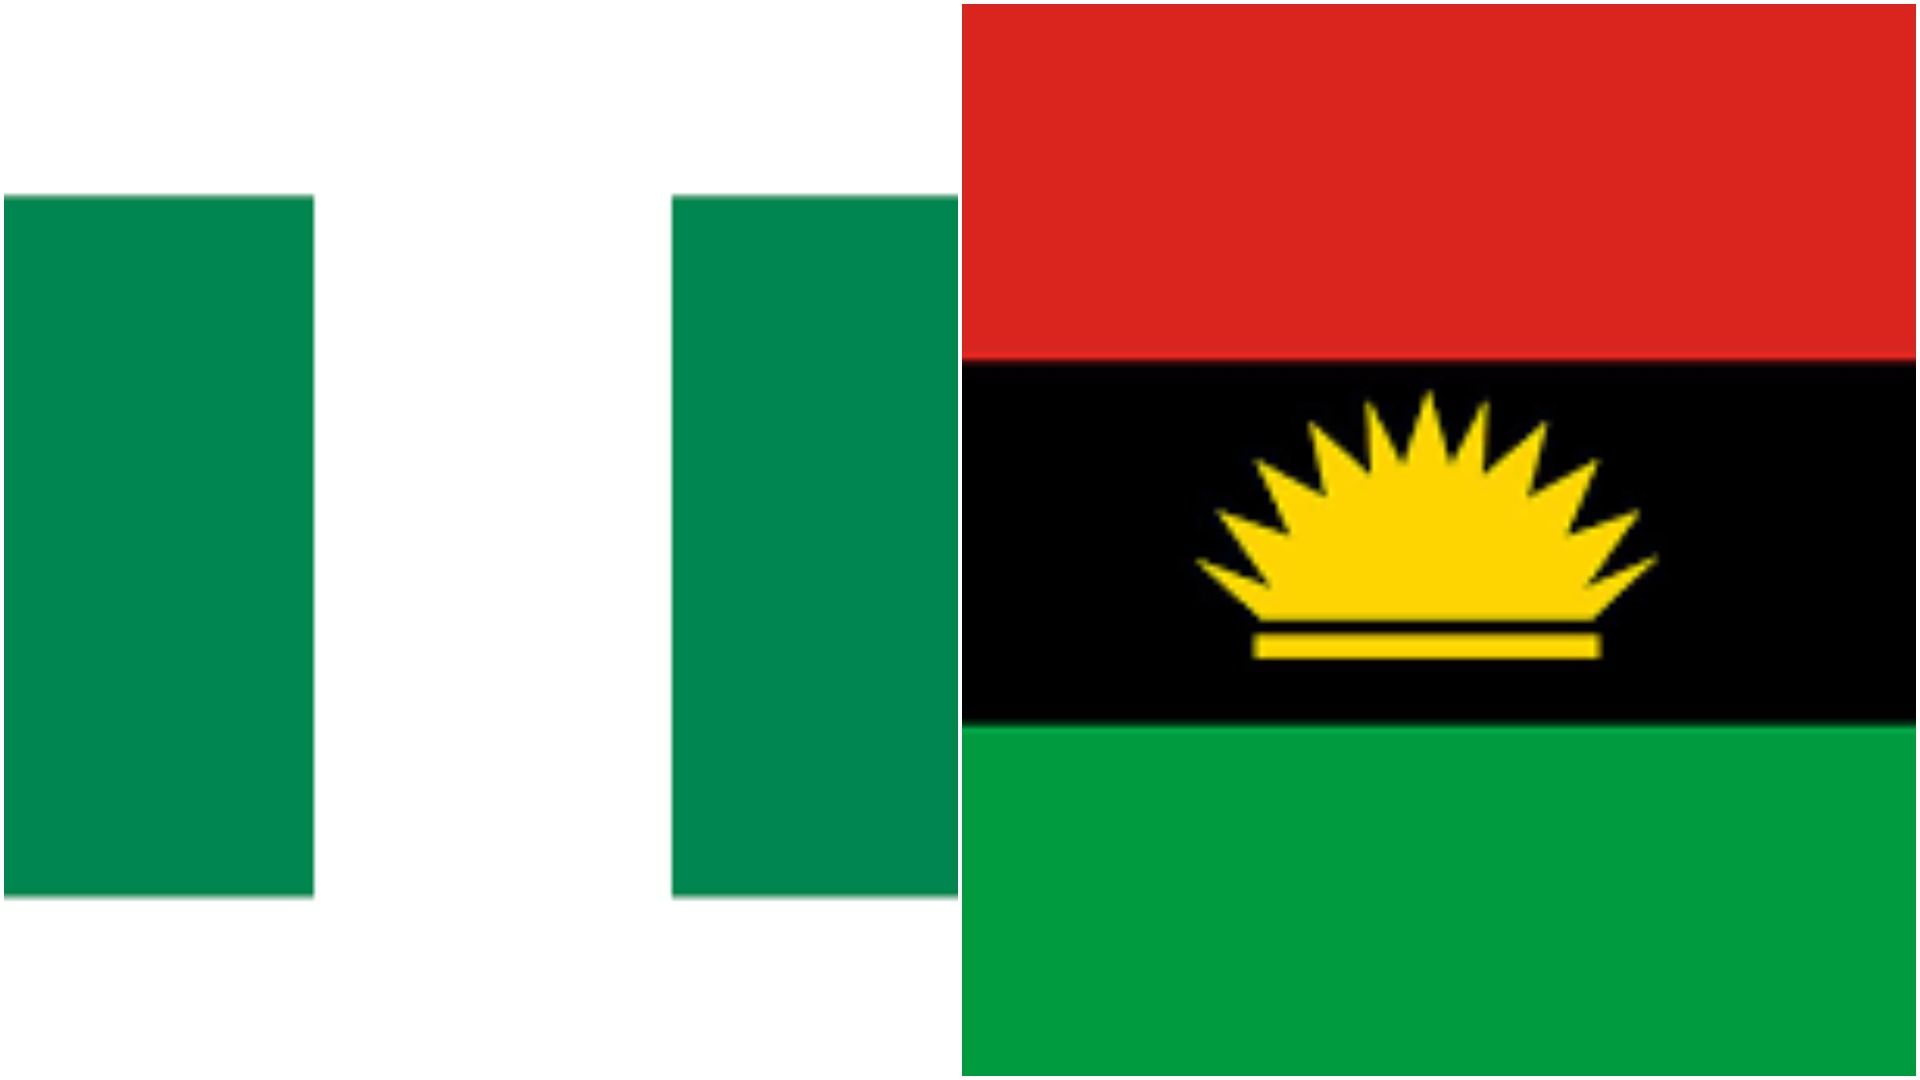 Nigeria and Biafra